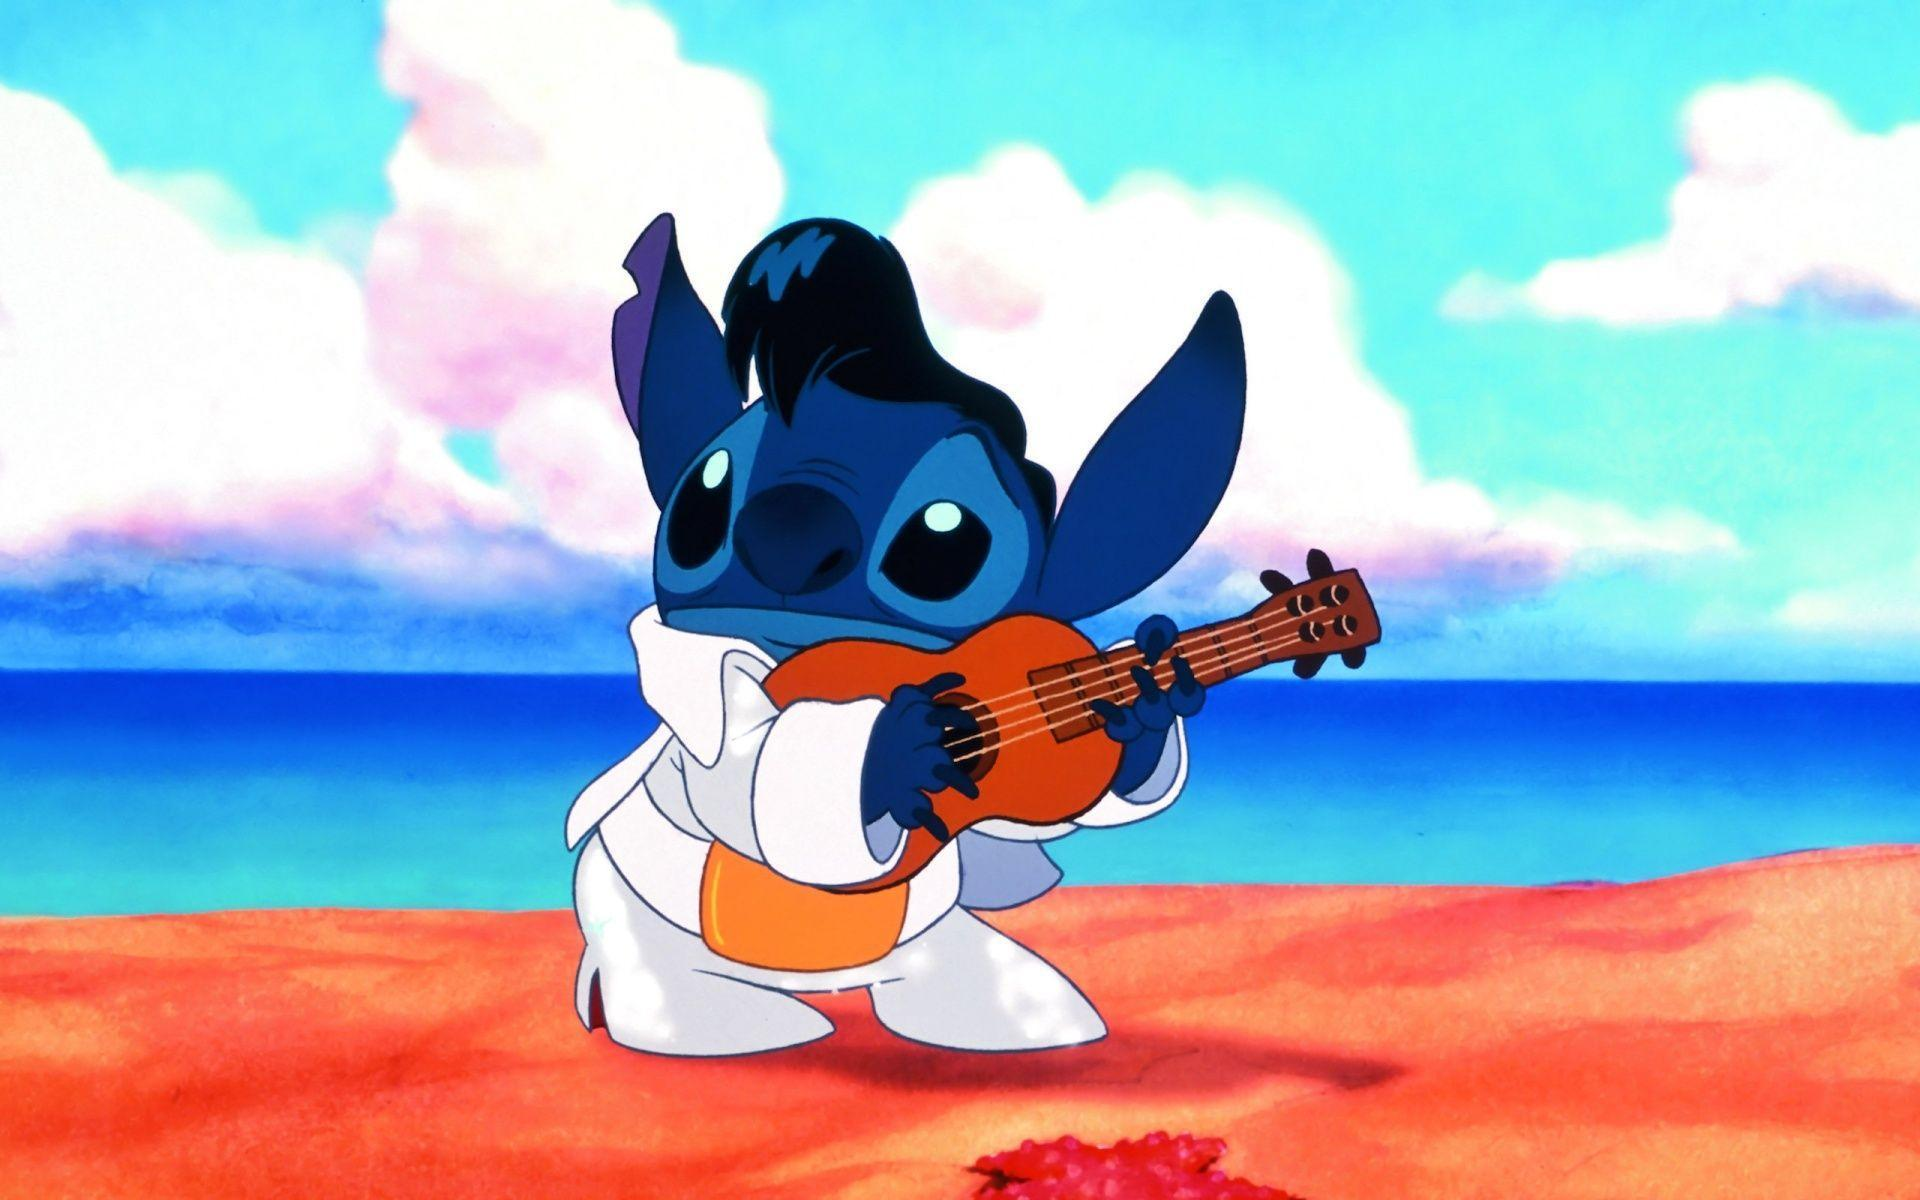 Stitch Wallpapers - Wallpaper Cueva